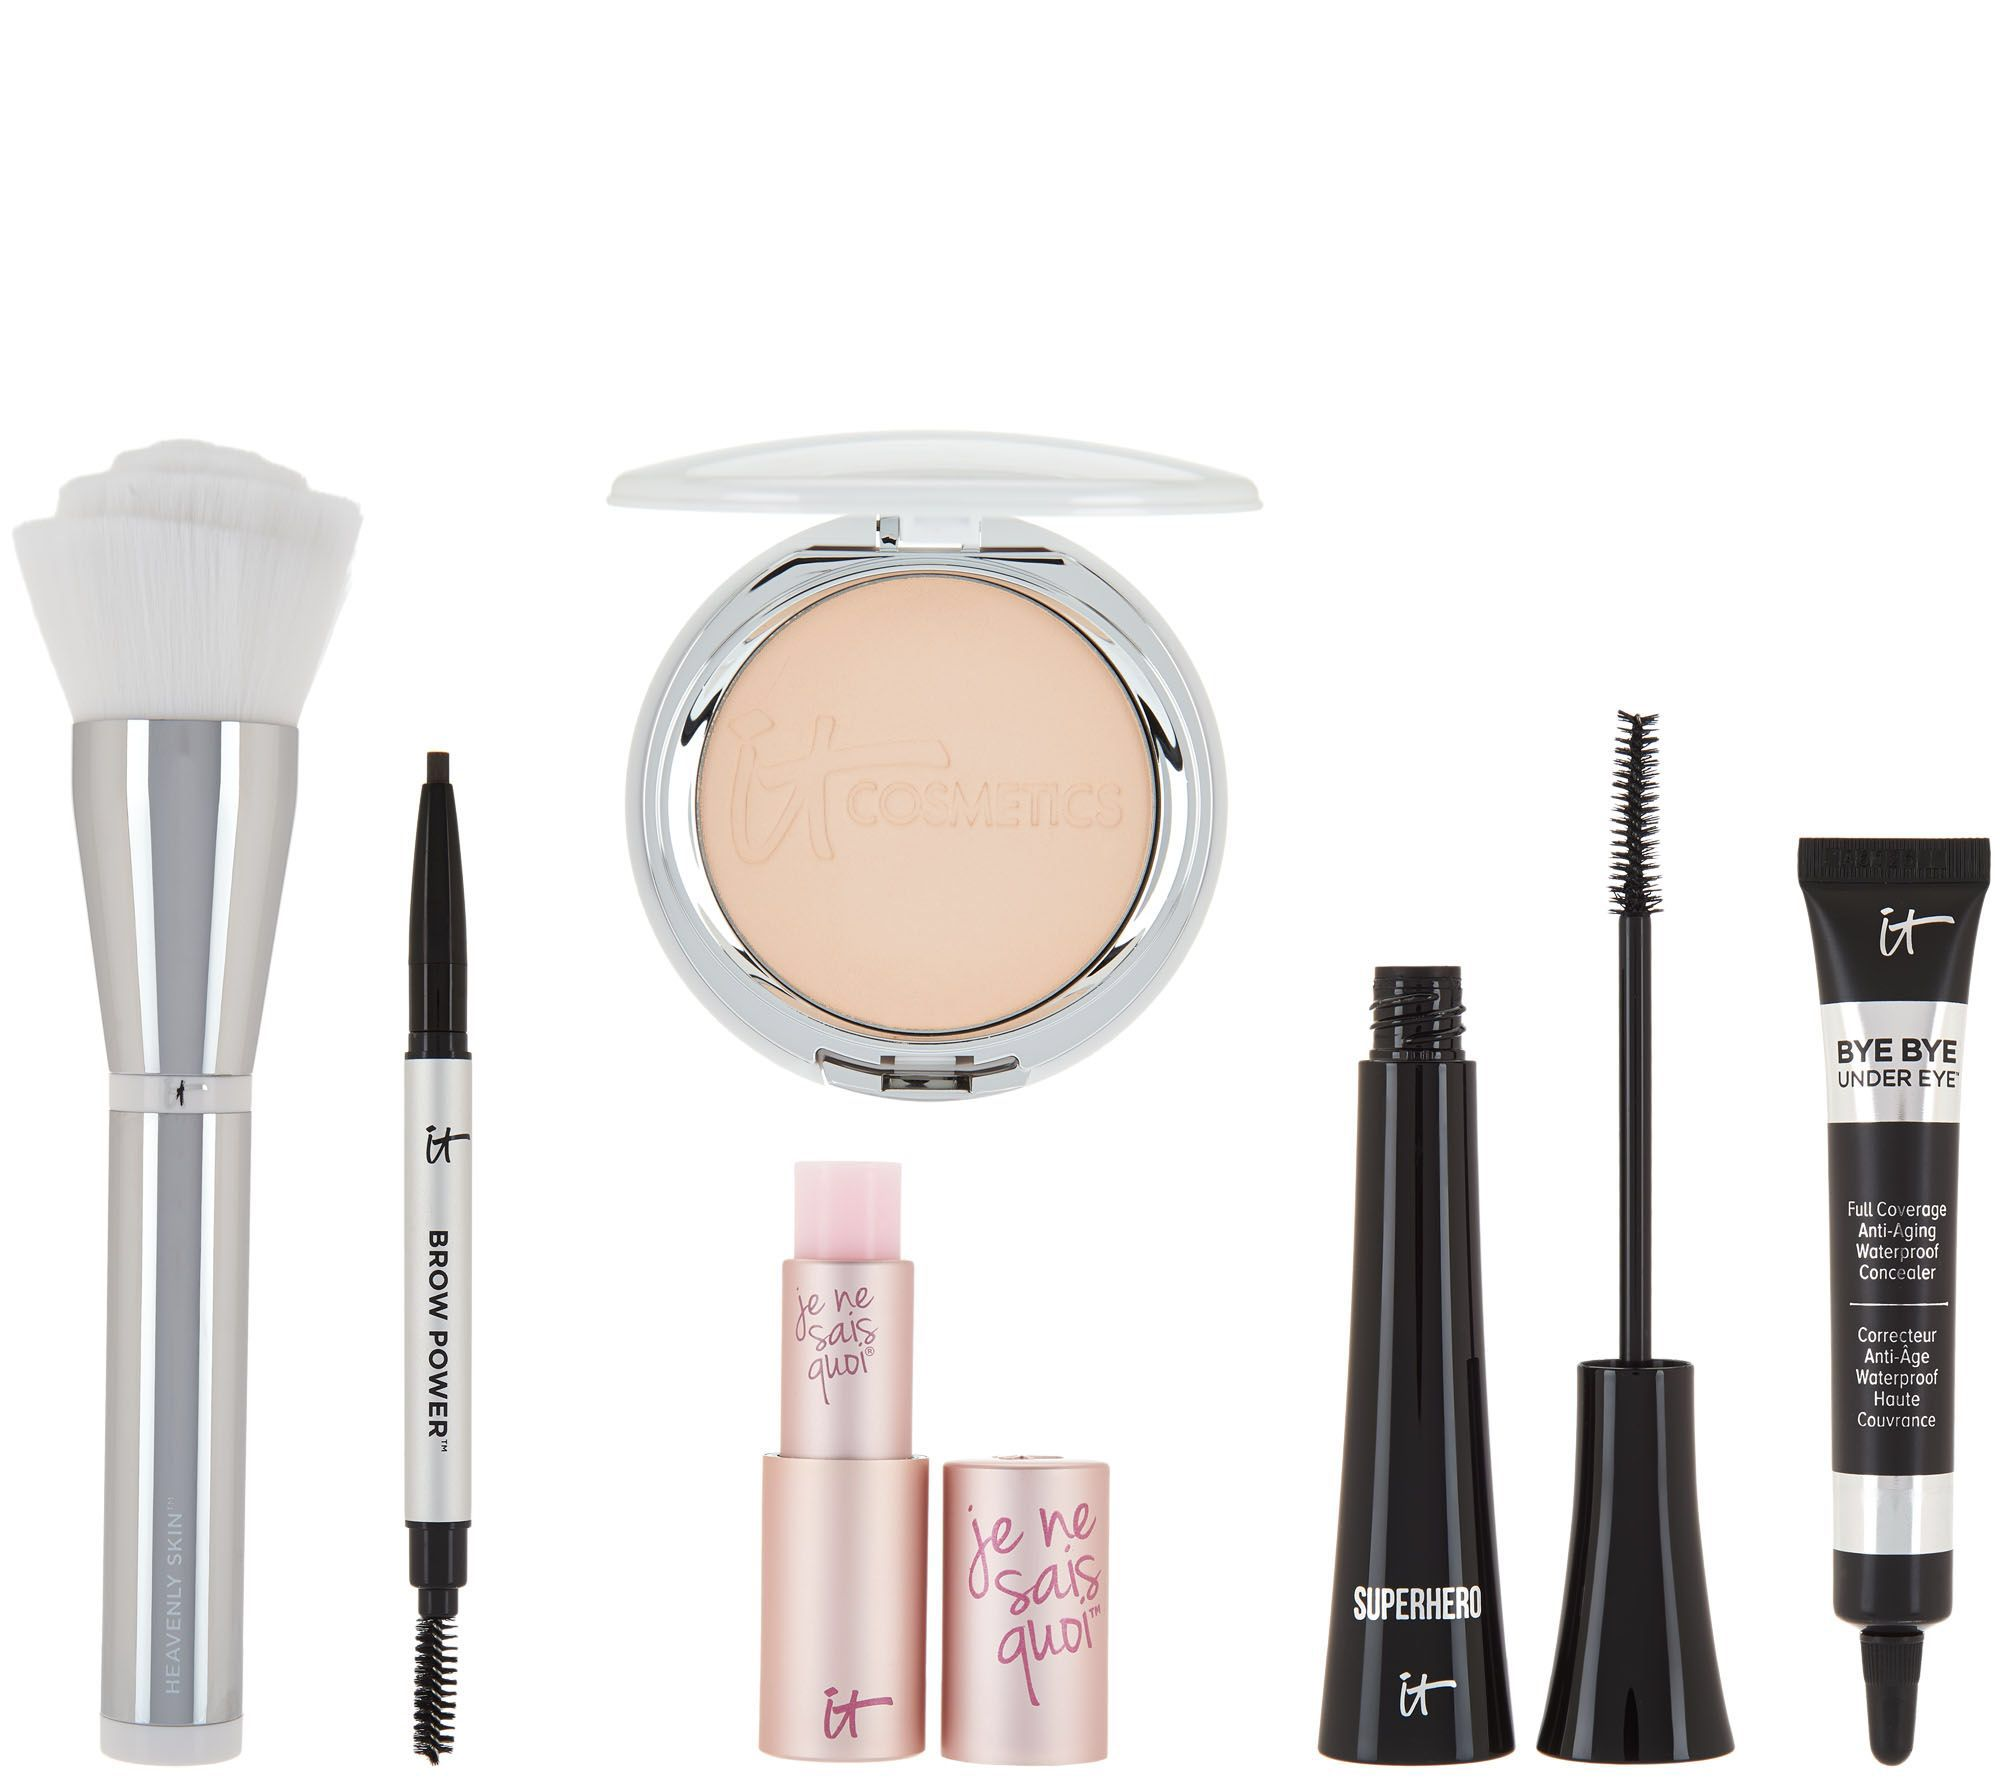 IT Cosmetics IT's Your Top 5 Superstars and More! 6piece